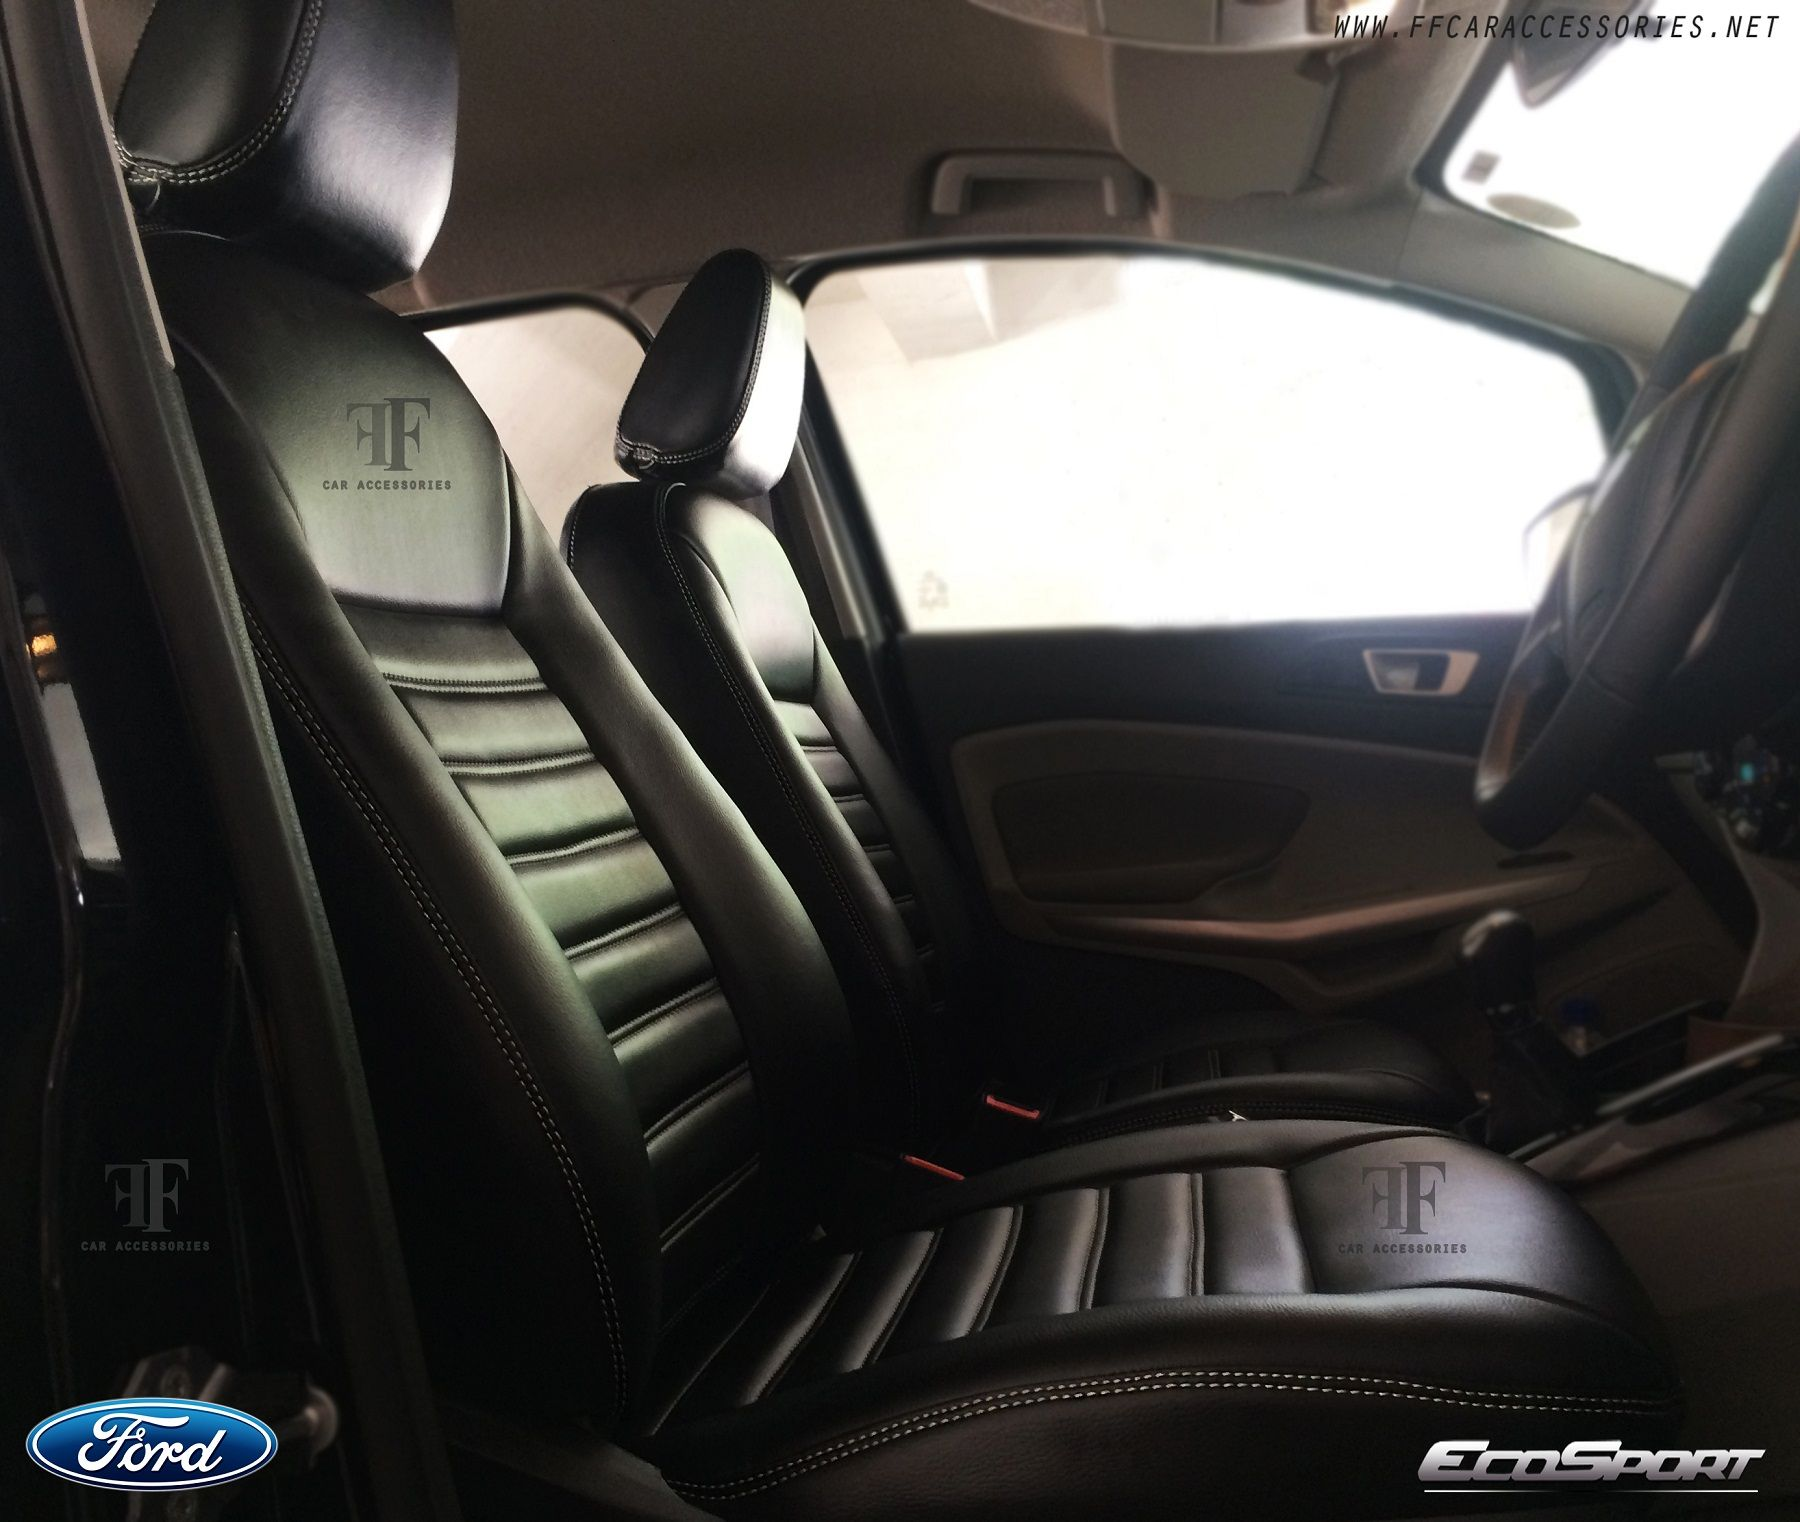 Ford Ecosport seat cover with detailed white stitch by